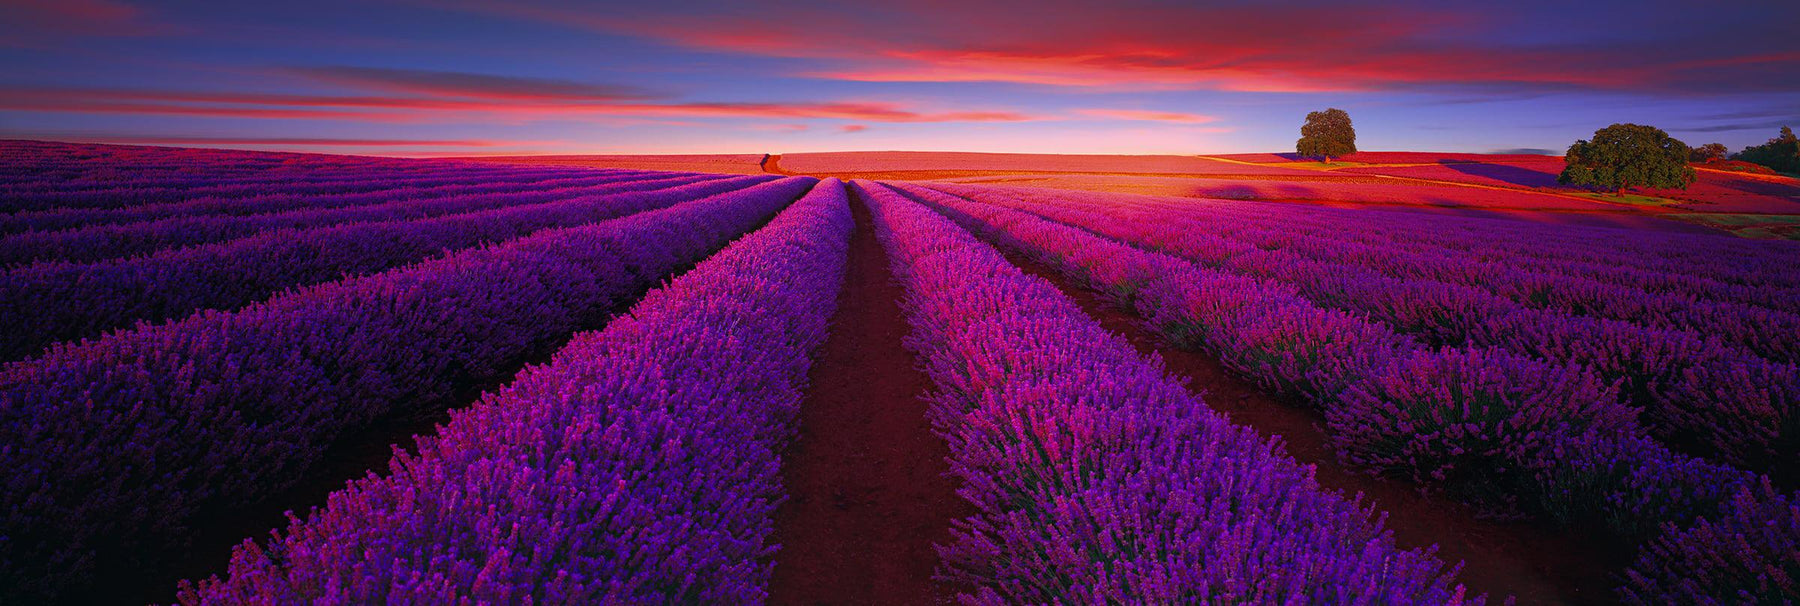 Sun shining over fields filled with rows of lavender bushes and two trees in Nabowla Australia